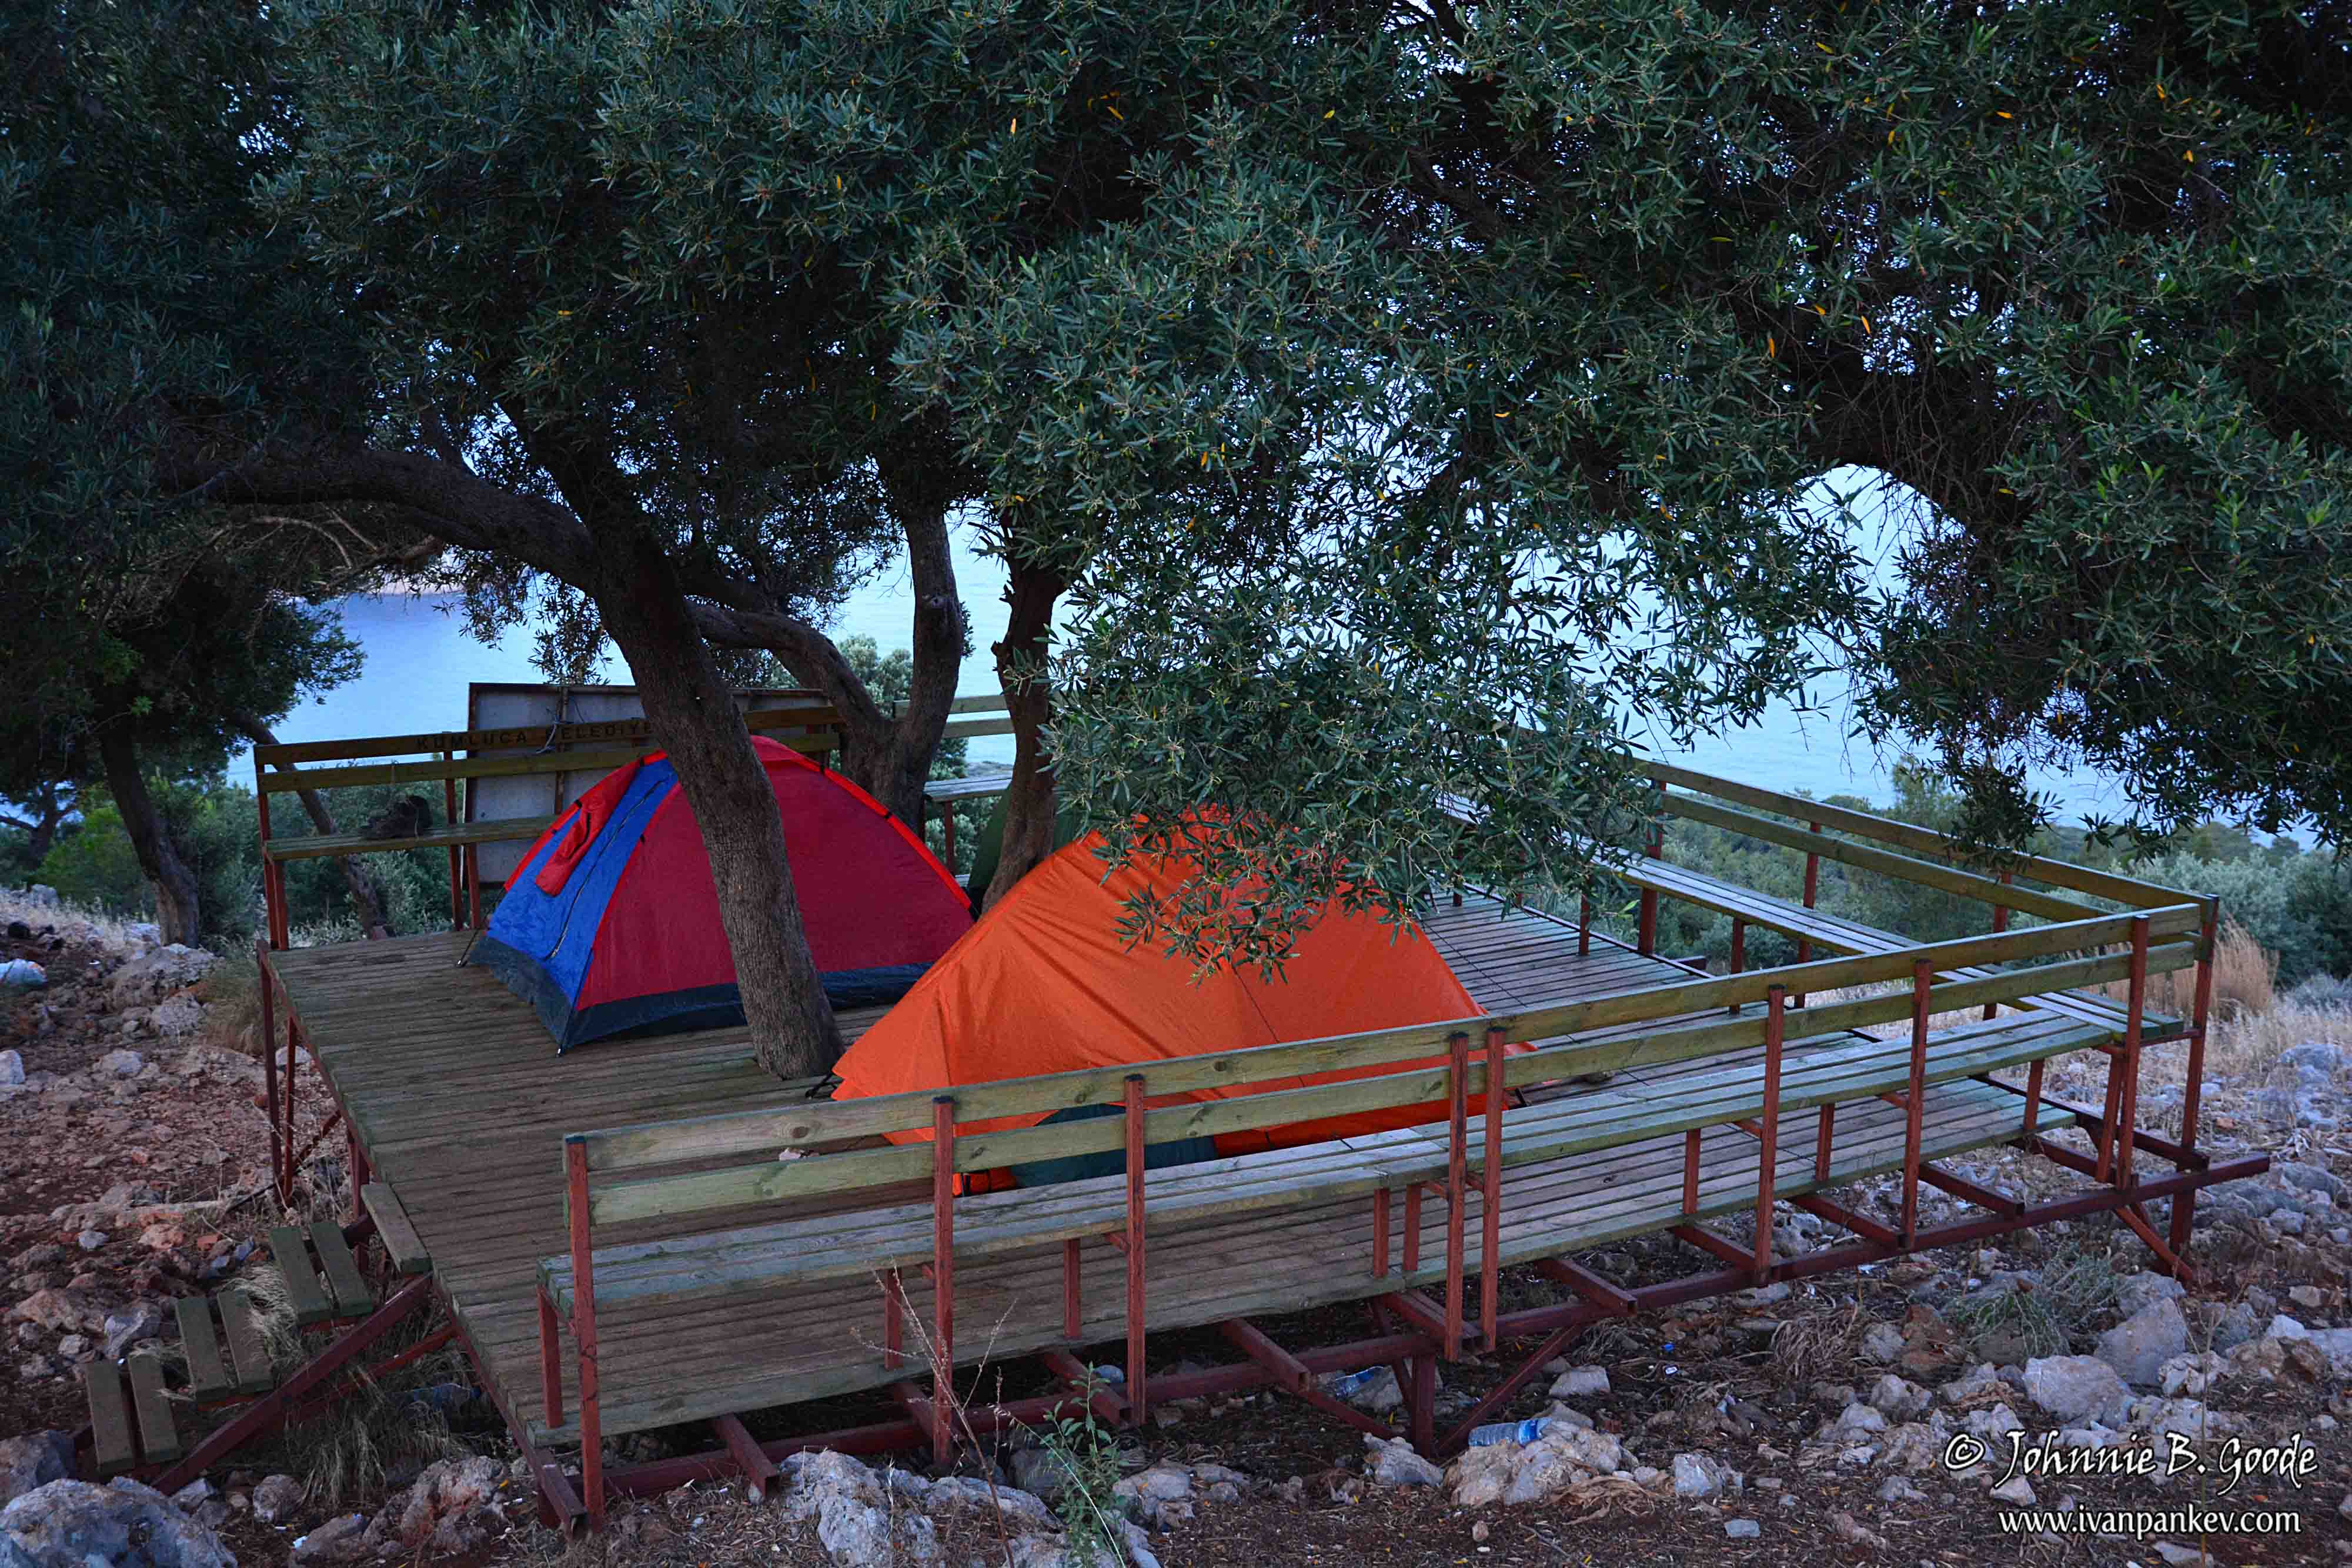 Wild_camping_04